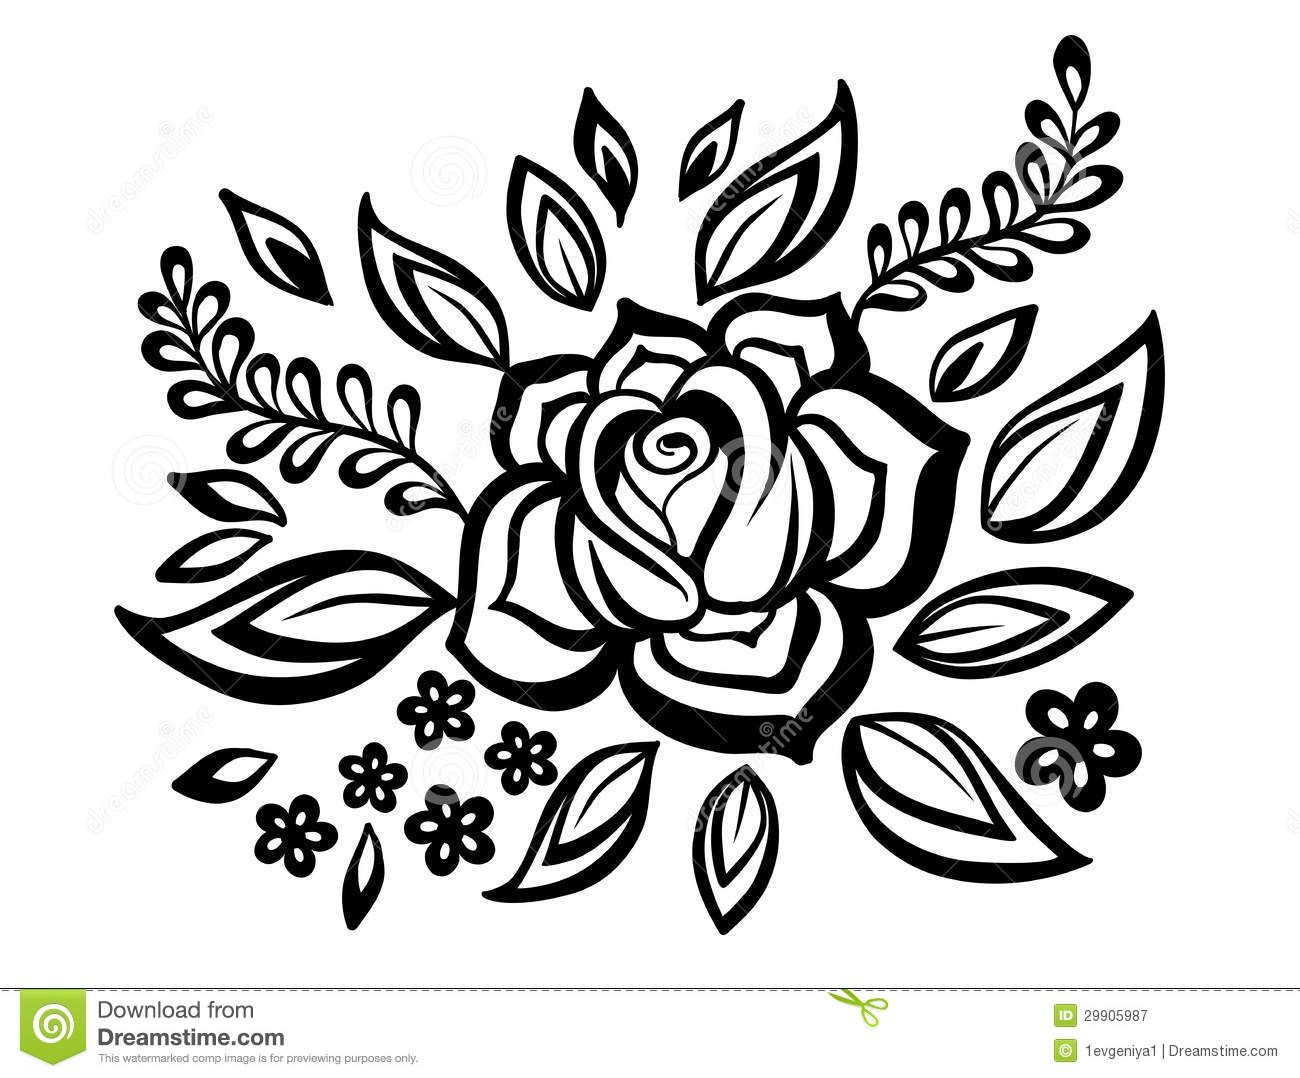 Black and white flowers and leaves design element with imitation black and white flowers and leaves design element with imitation guipure embroidery mightylinksfo Choice Image